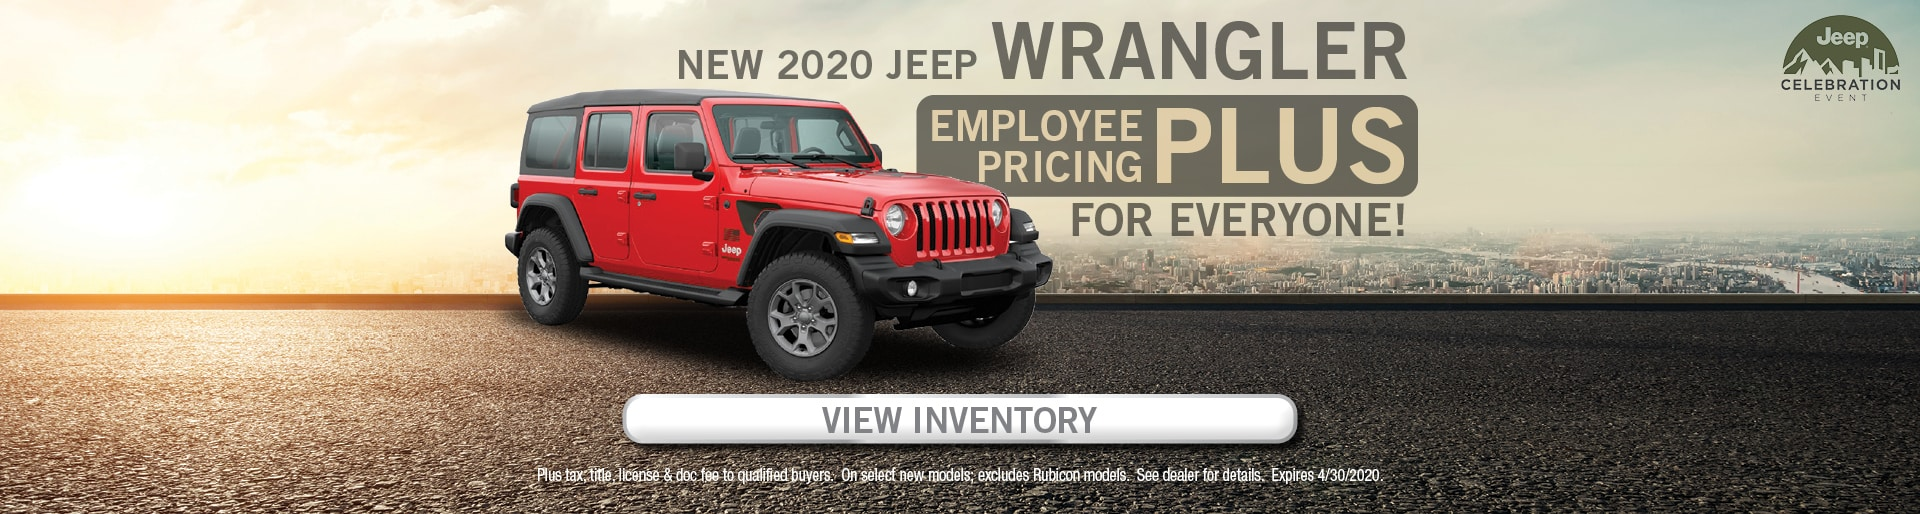 Wrangler purchase offer